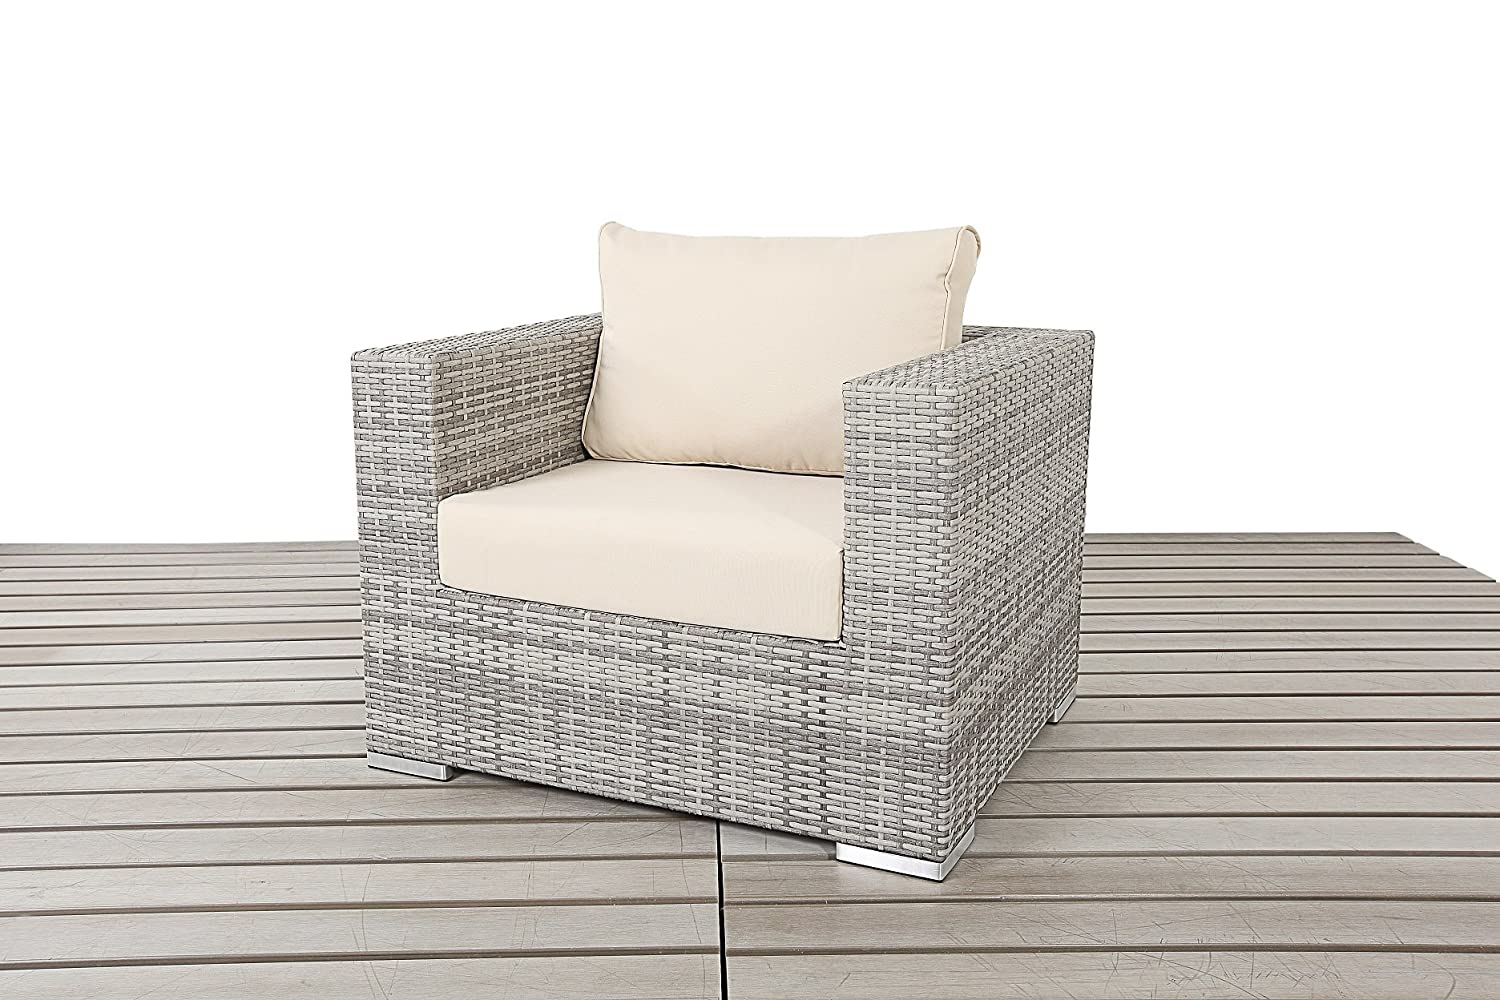 Dallas Rustic Garden Möbel Single Rattan Sessel online kaufen